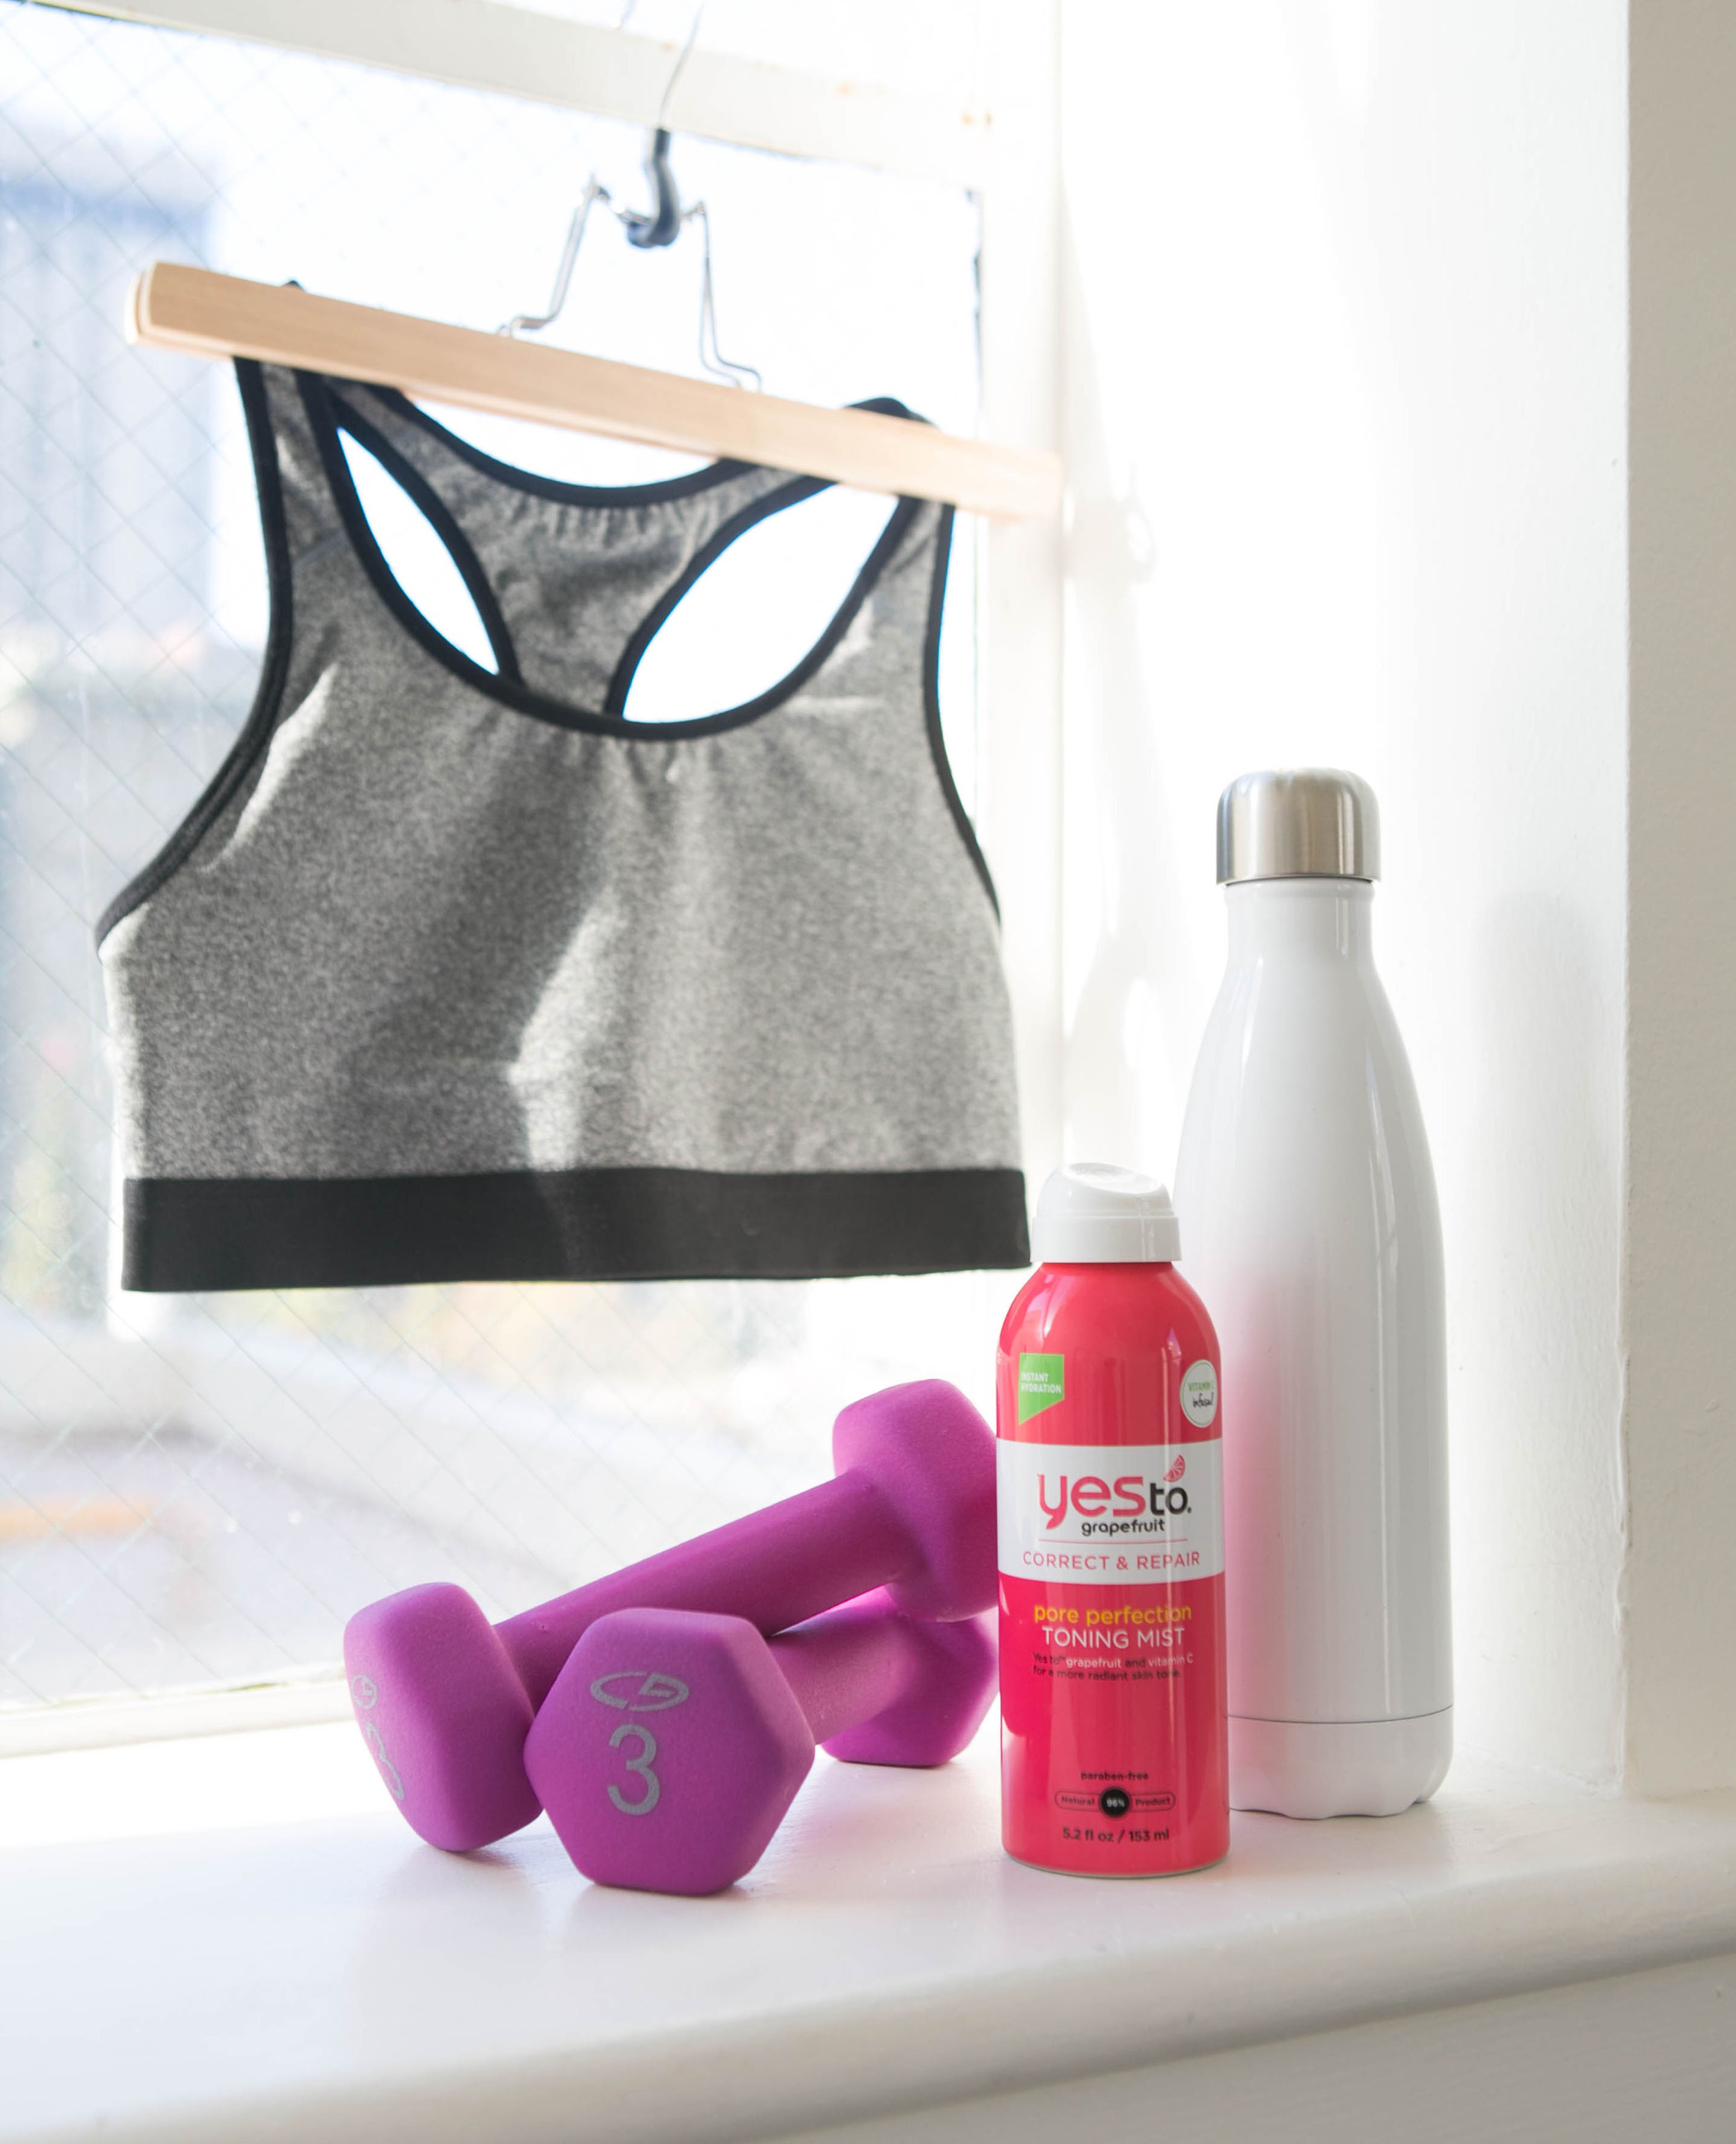 Yes To grapefruit toning mist bra workout gear photo by Tory Putnam